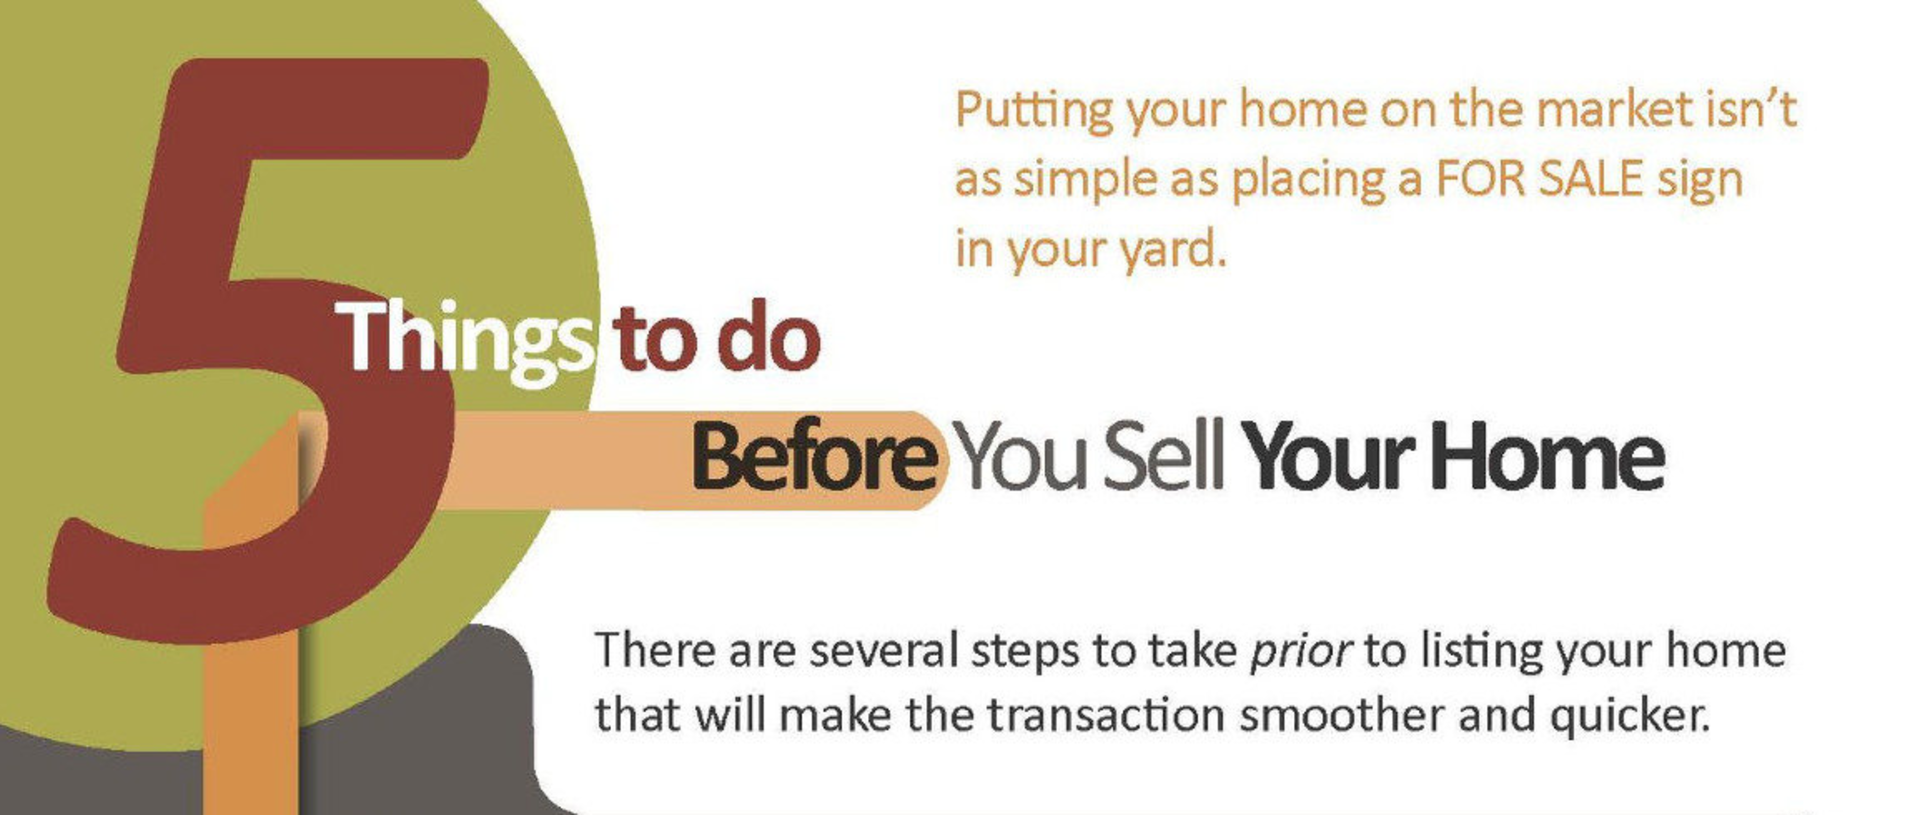 5 Things to do Before You Sell Your Home